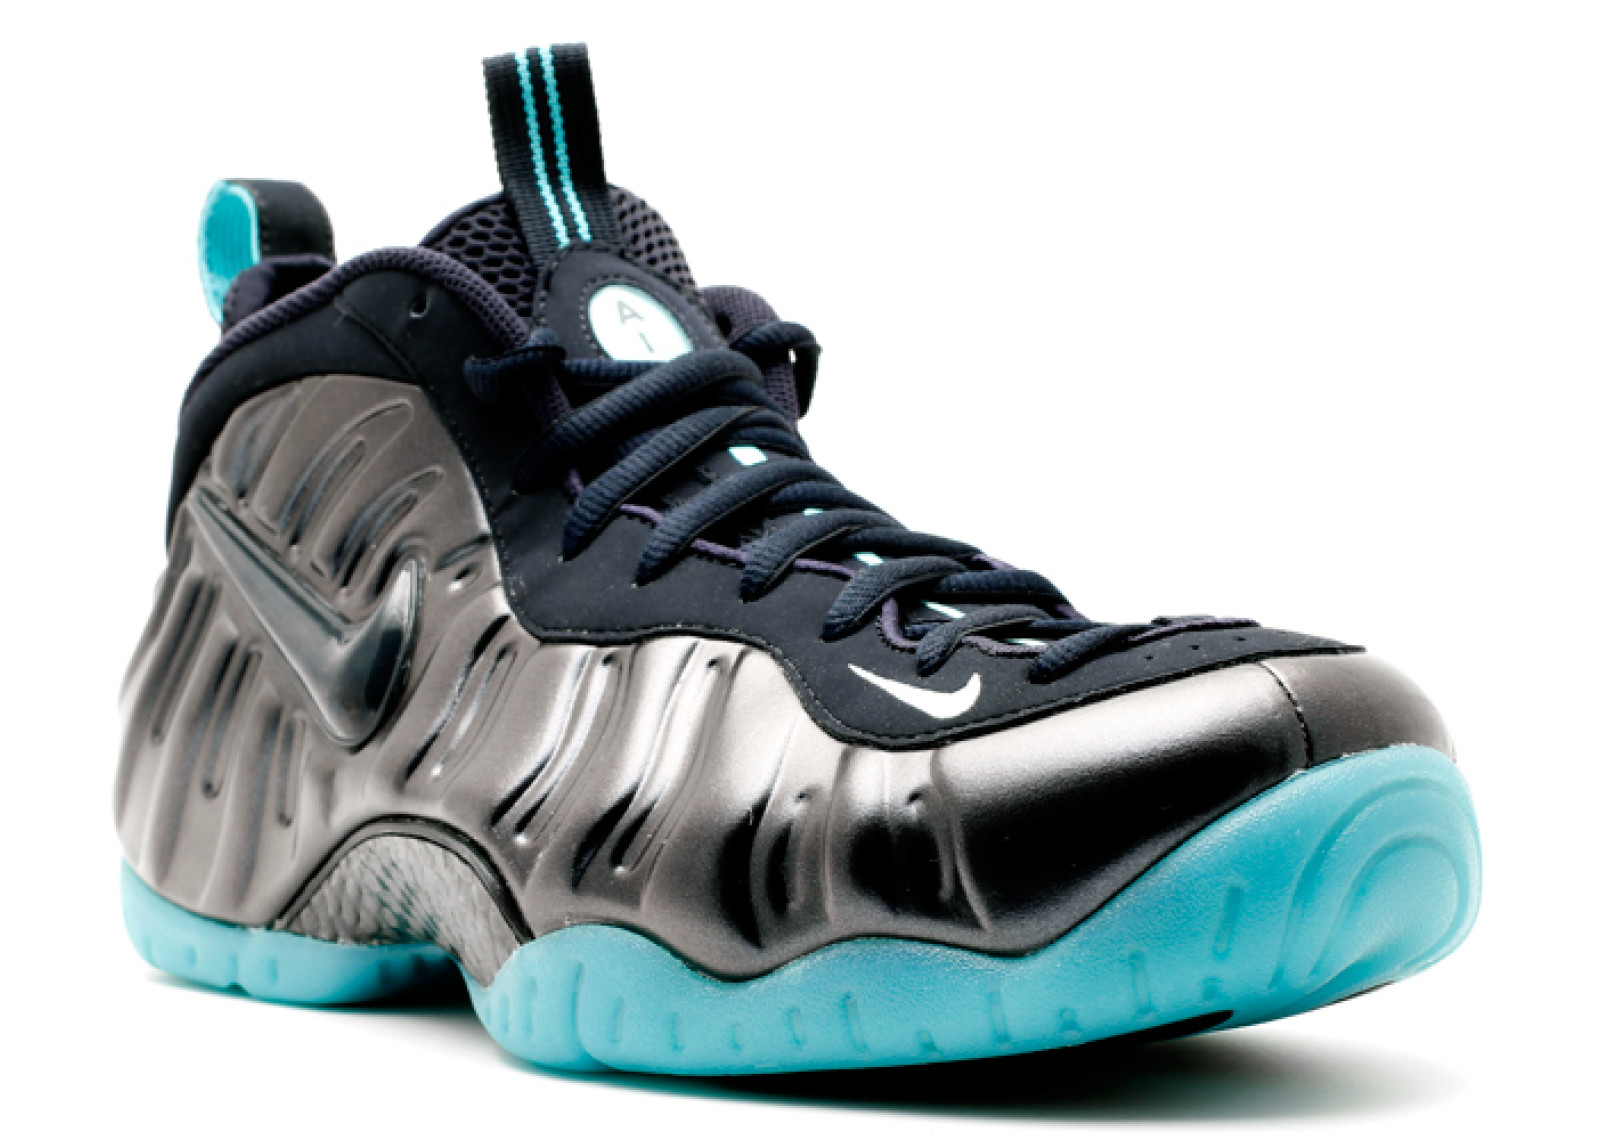 finest selection b90b5 8ccc1 Nike - Men - Air Foamposite Pro  Aqua  - 624041-402 - Size 13